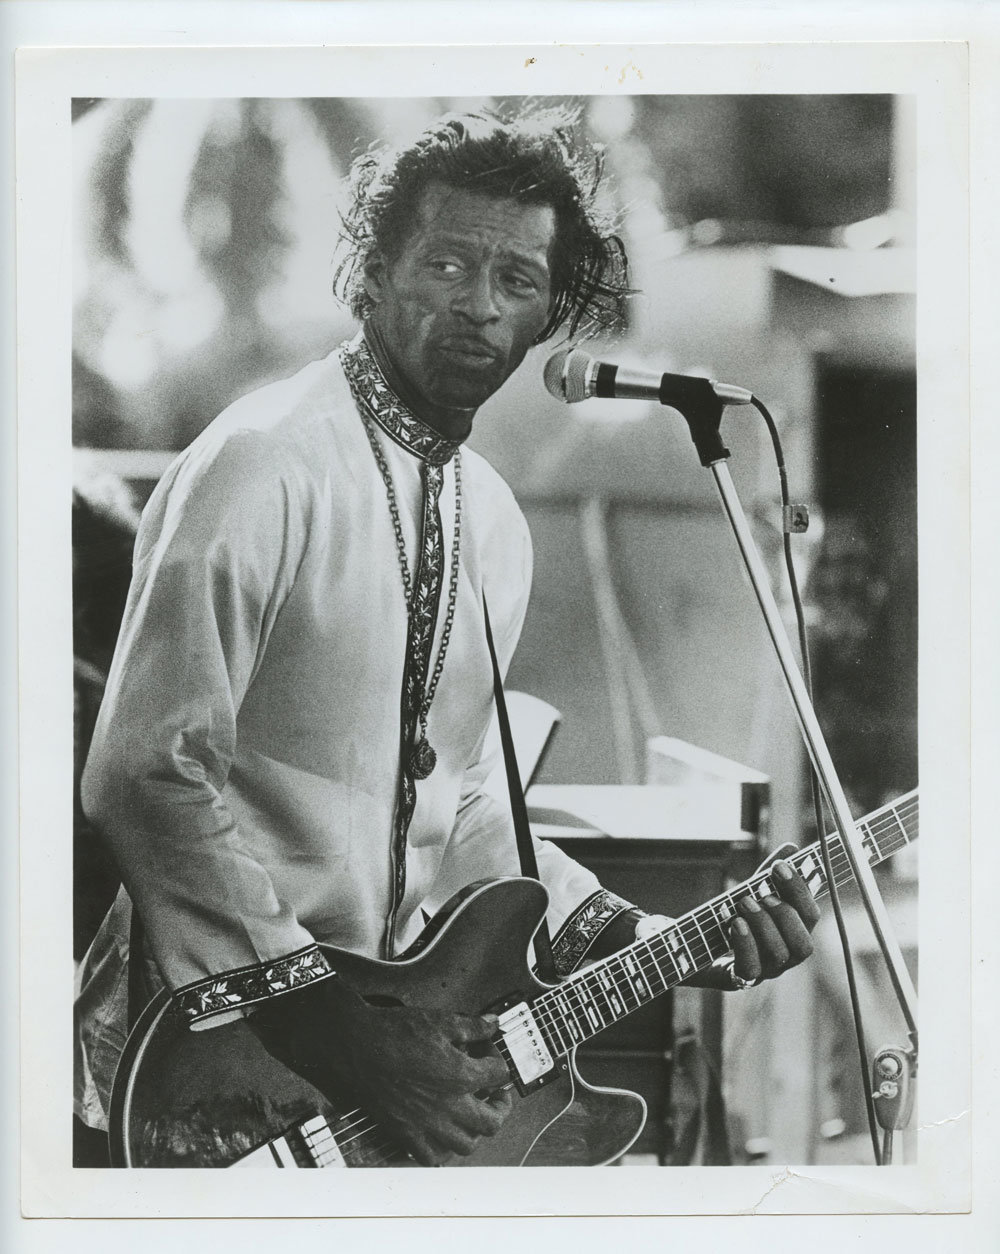 Chuck Berry Photo 1960s concert Publicity Promo